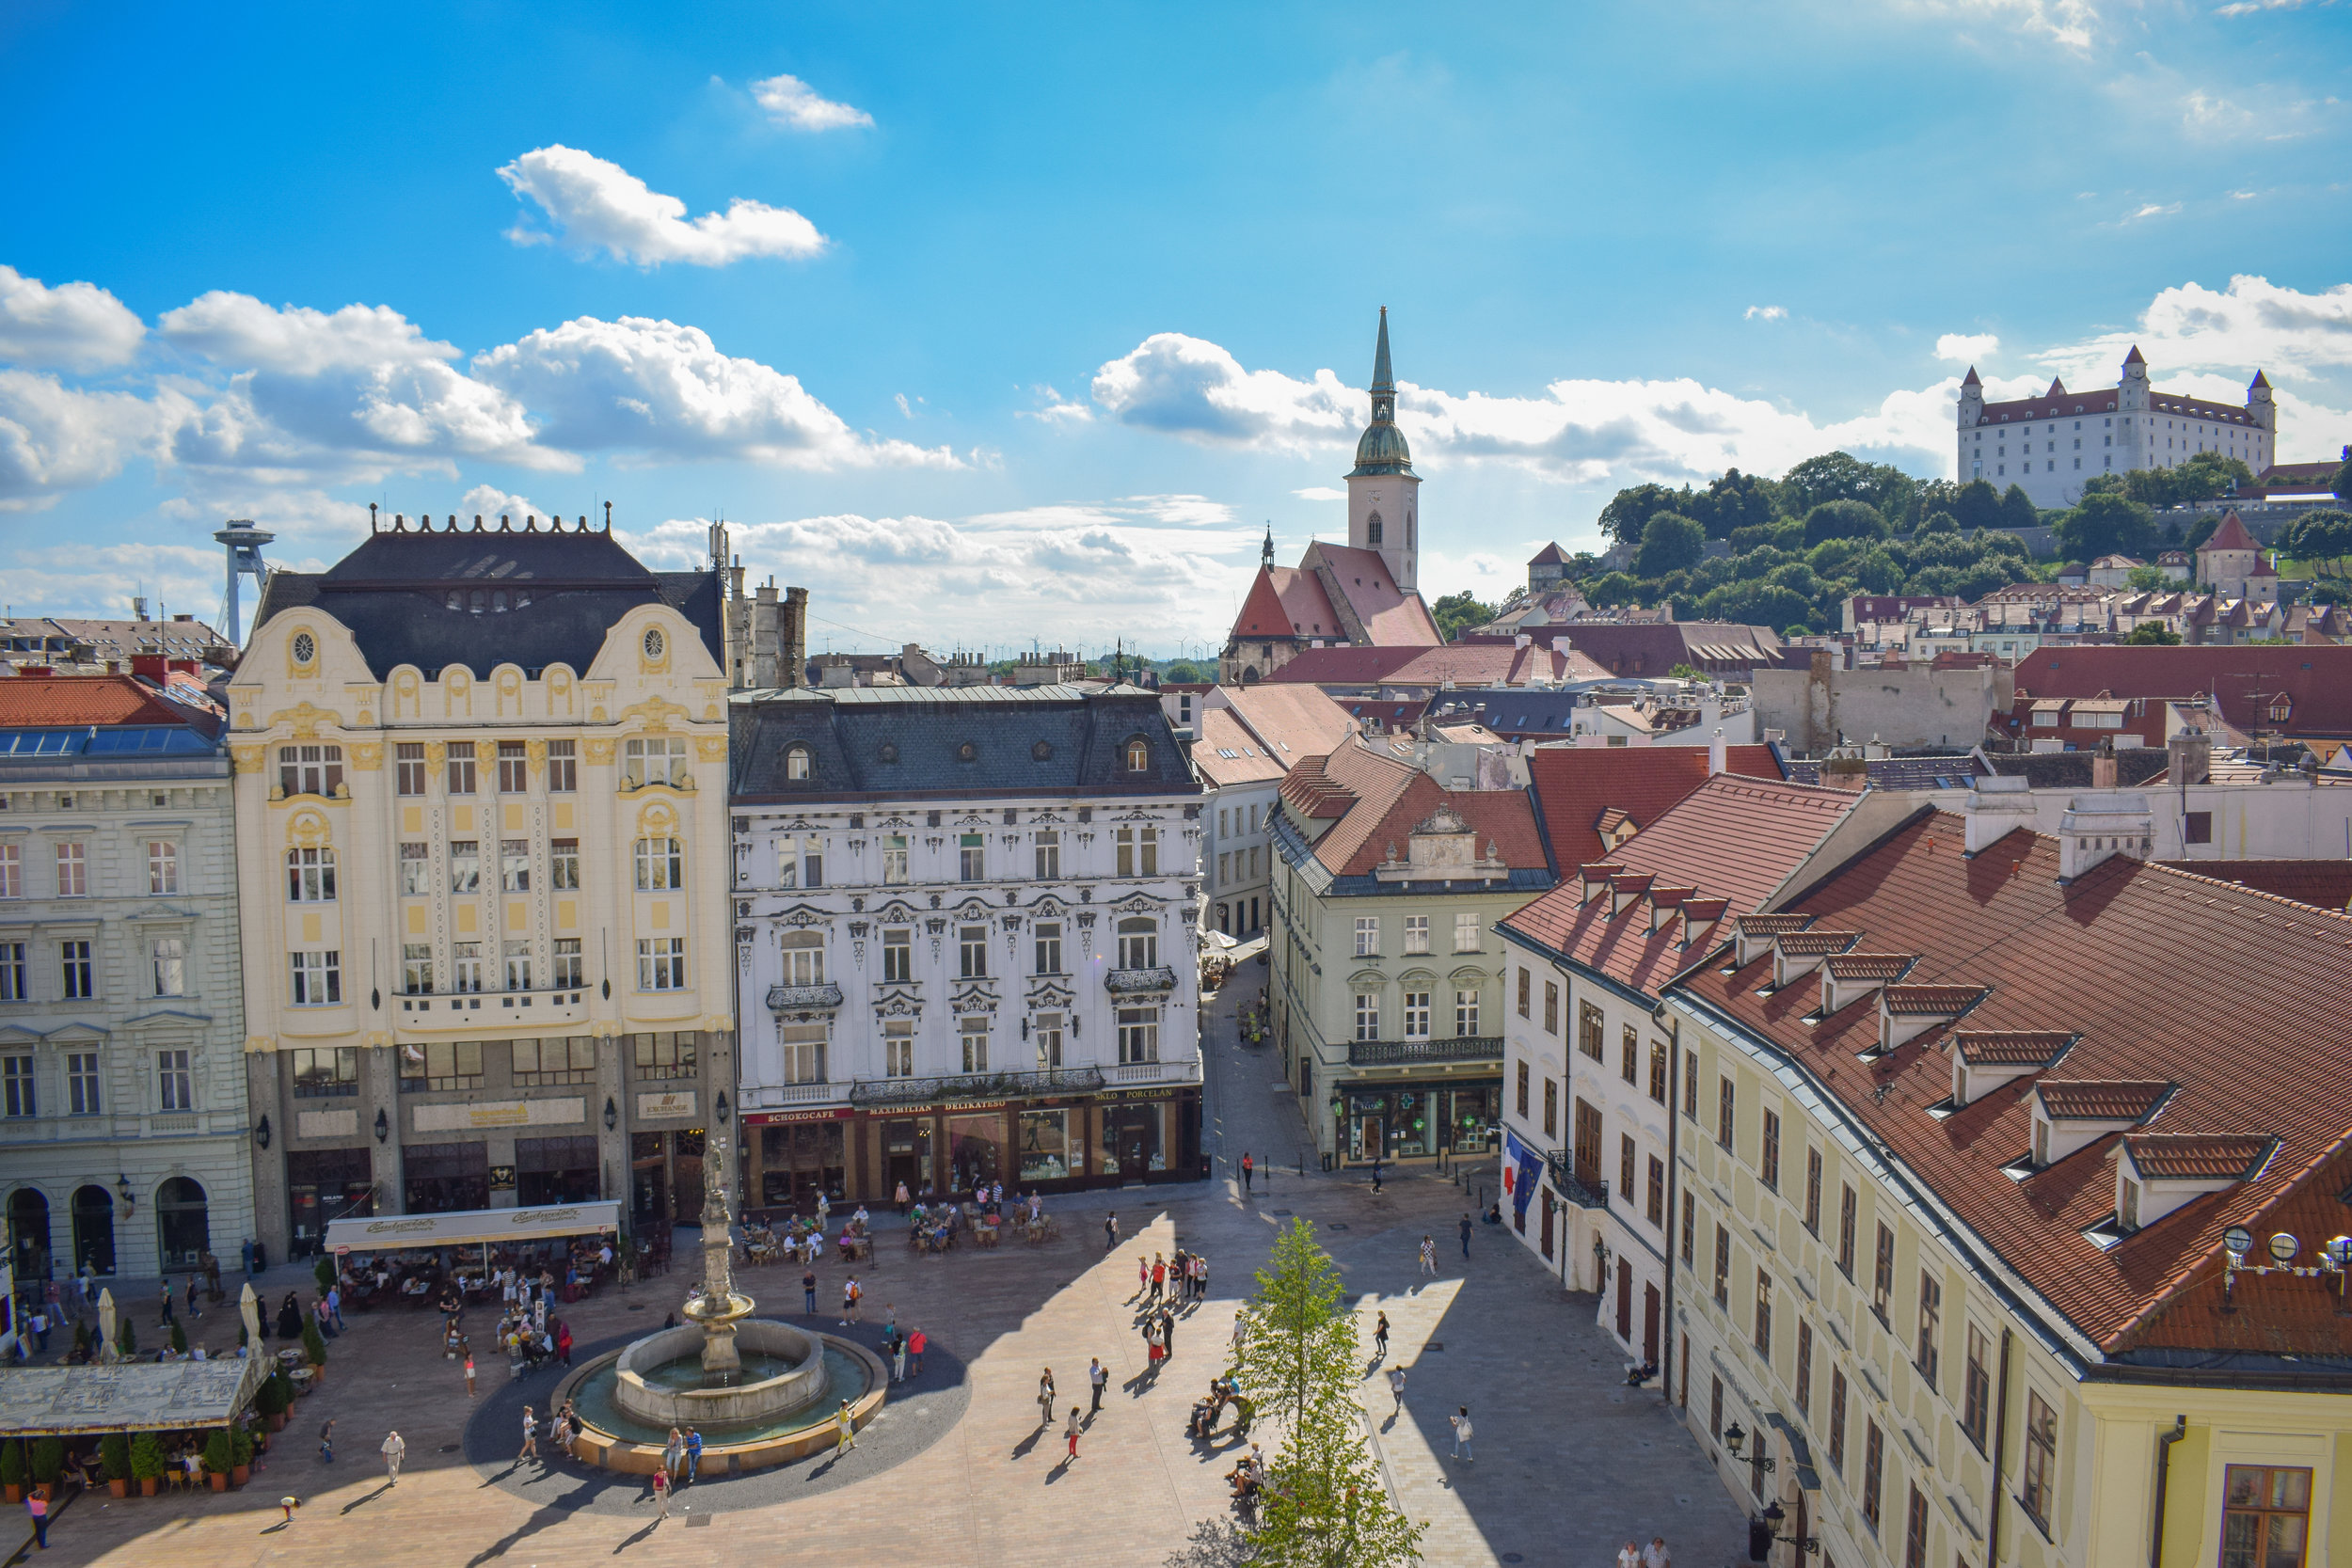 Bratislava is only a small city, but it packs a lot in.